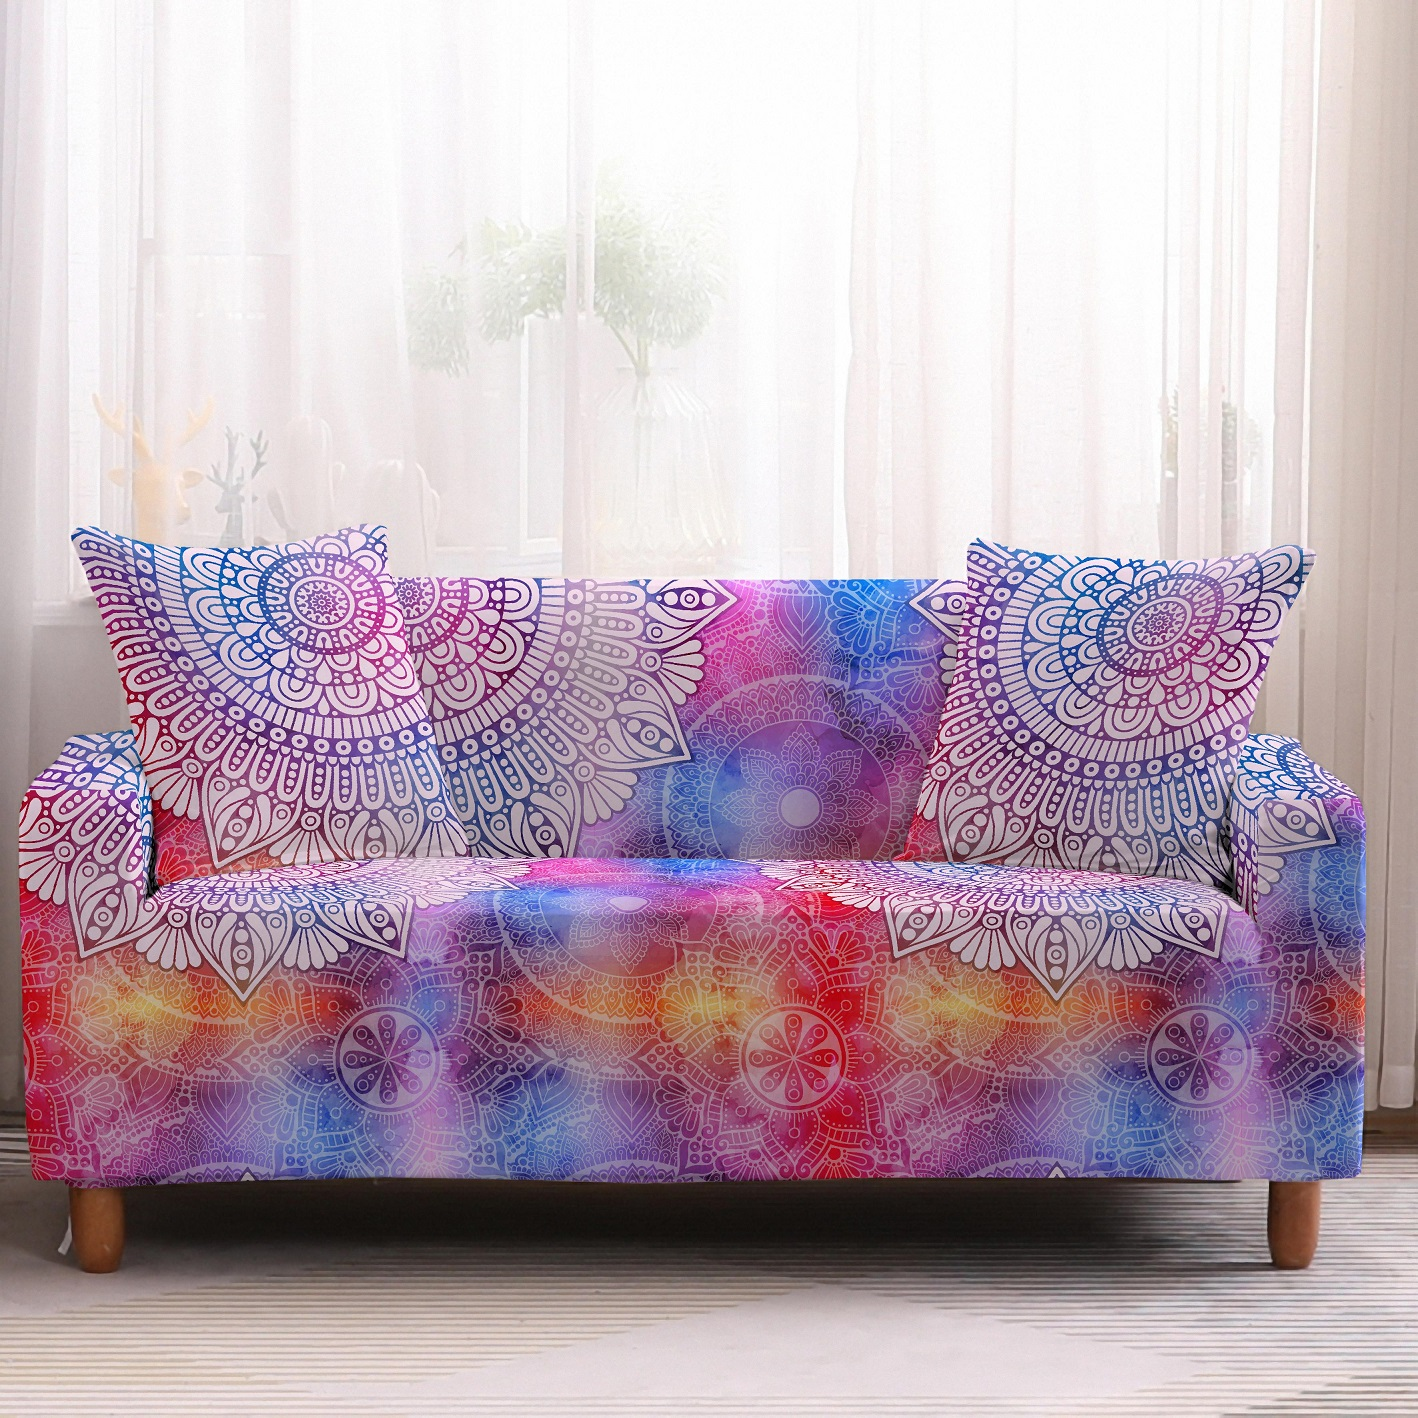 Bohemia Slipcovers Sofa Cover in Mandala Pattern to Protect Living Room Furniture from Stains and Dust 10